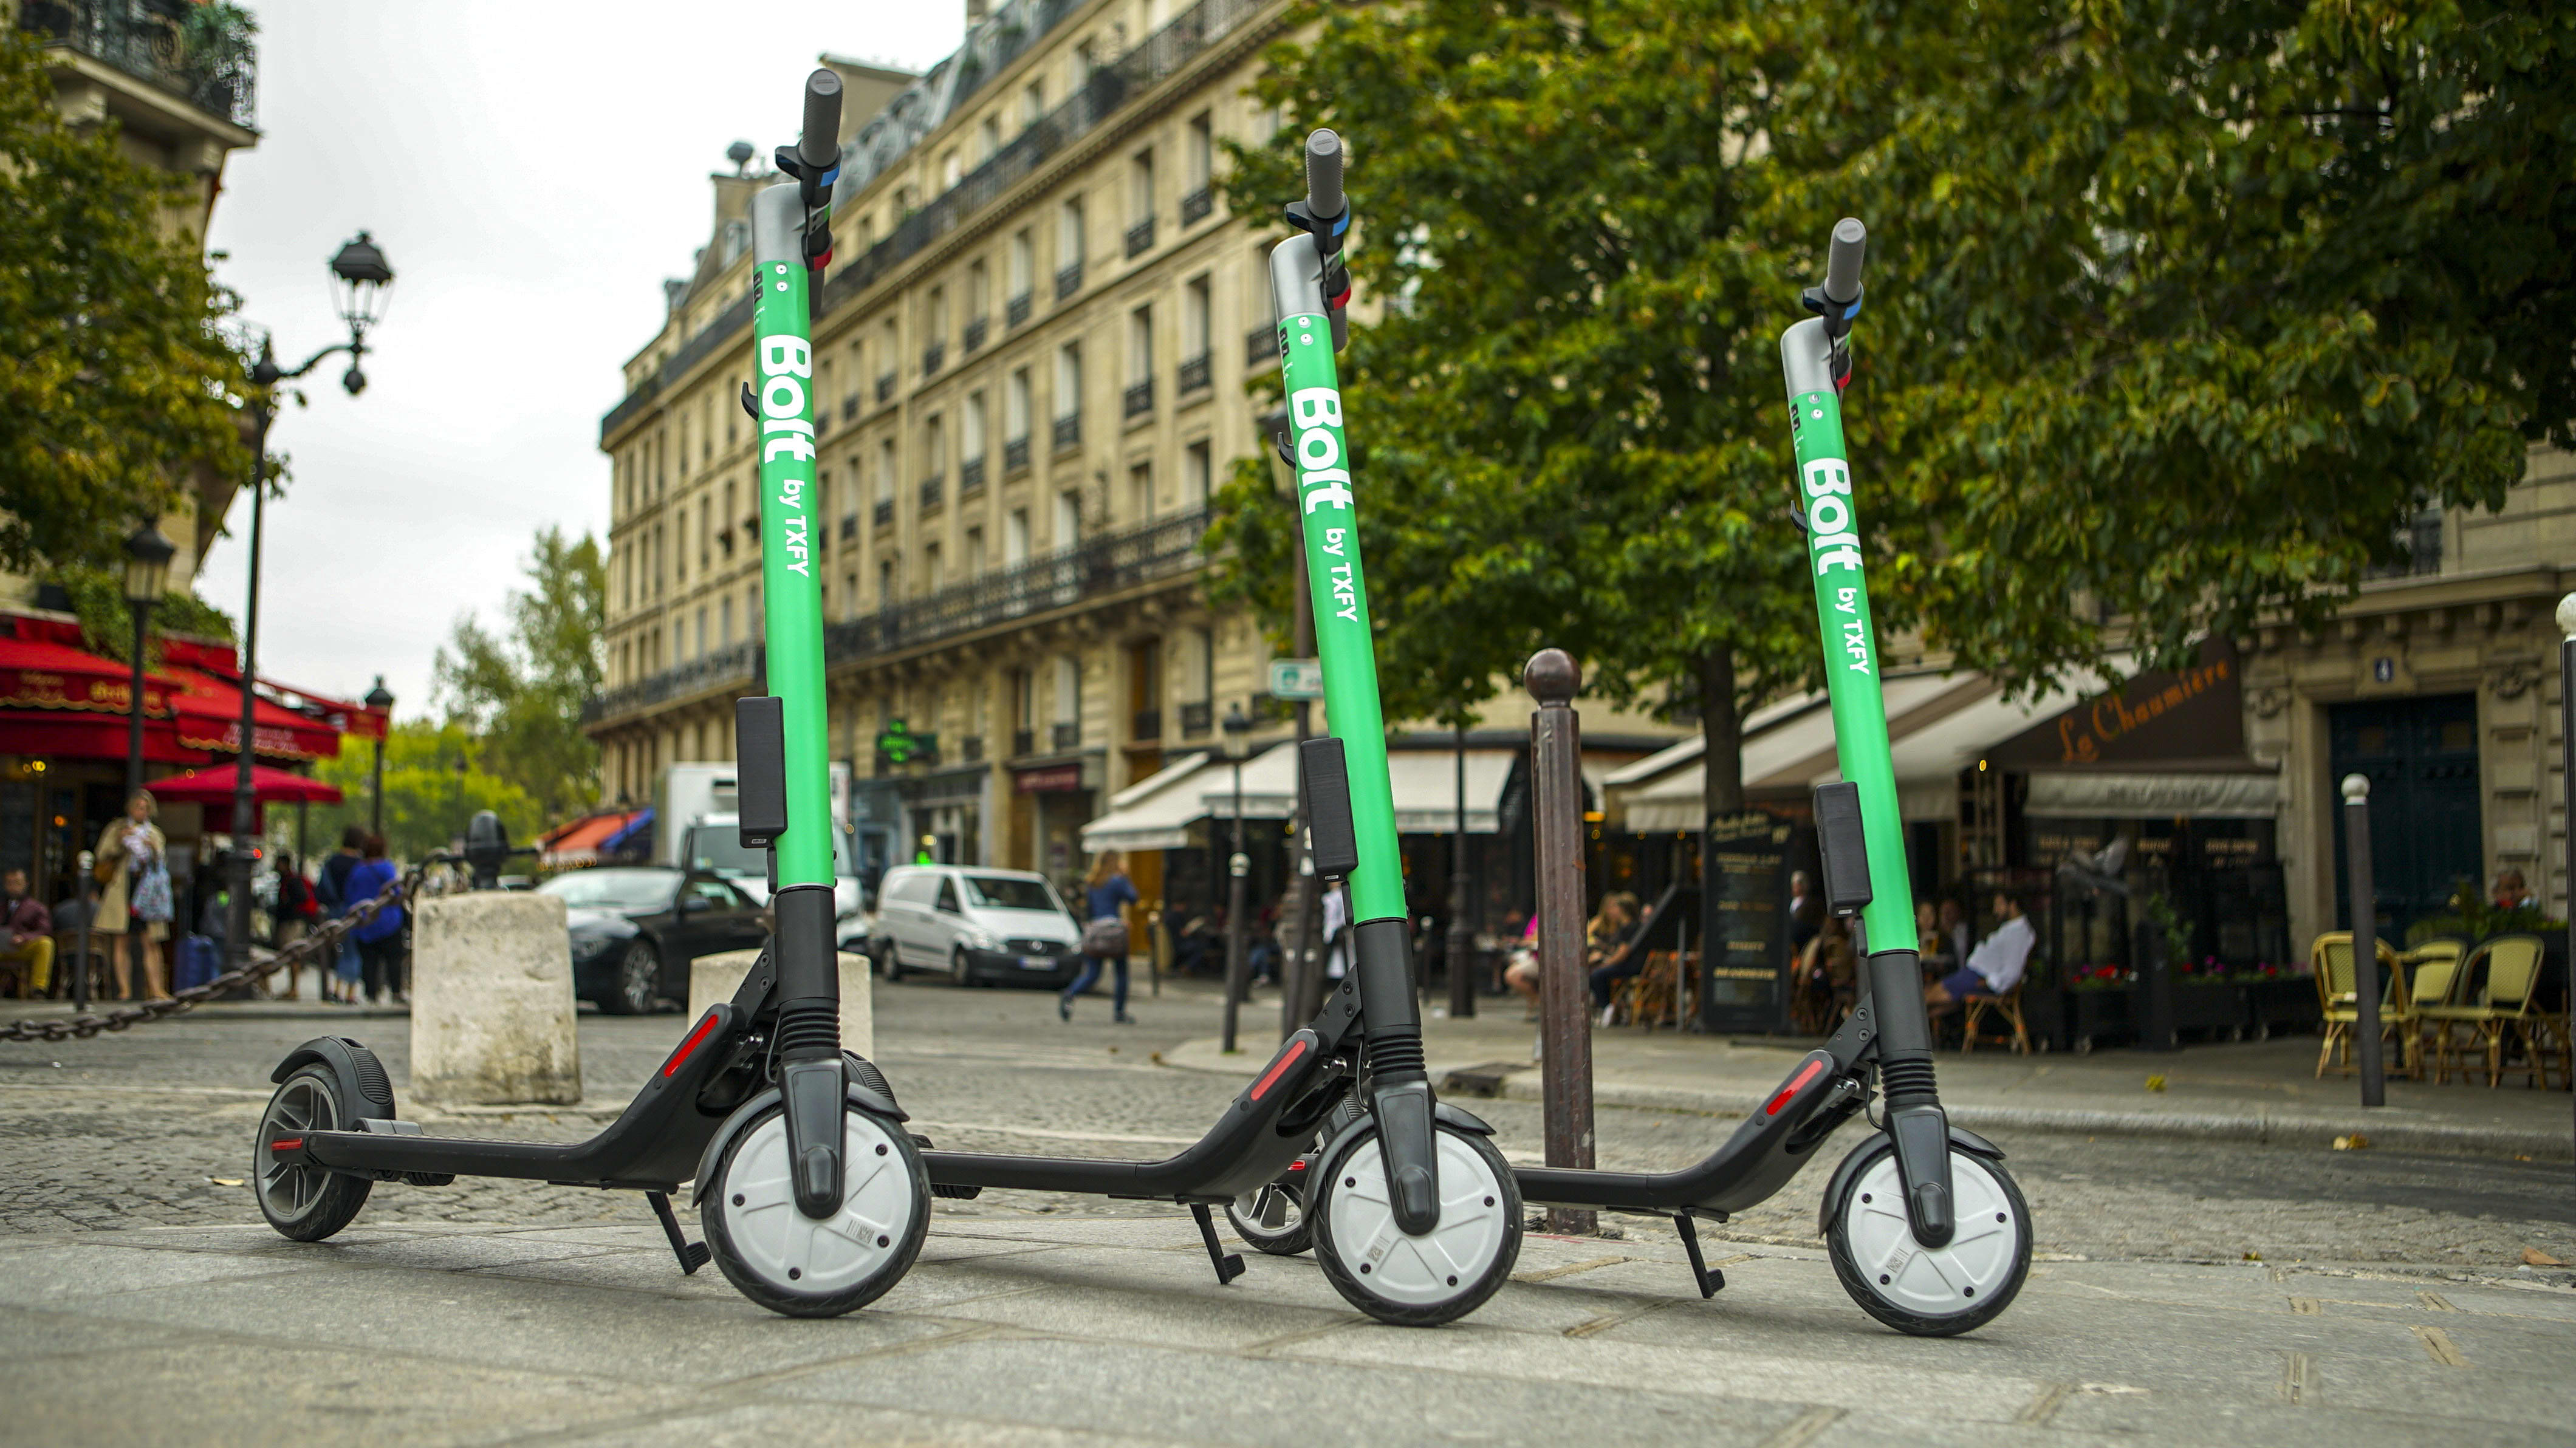 Taxify electric scooter hire app launches in Paris